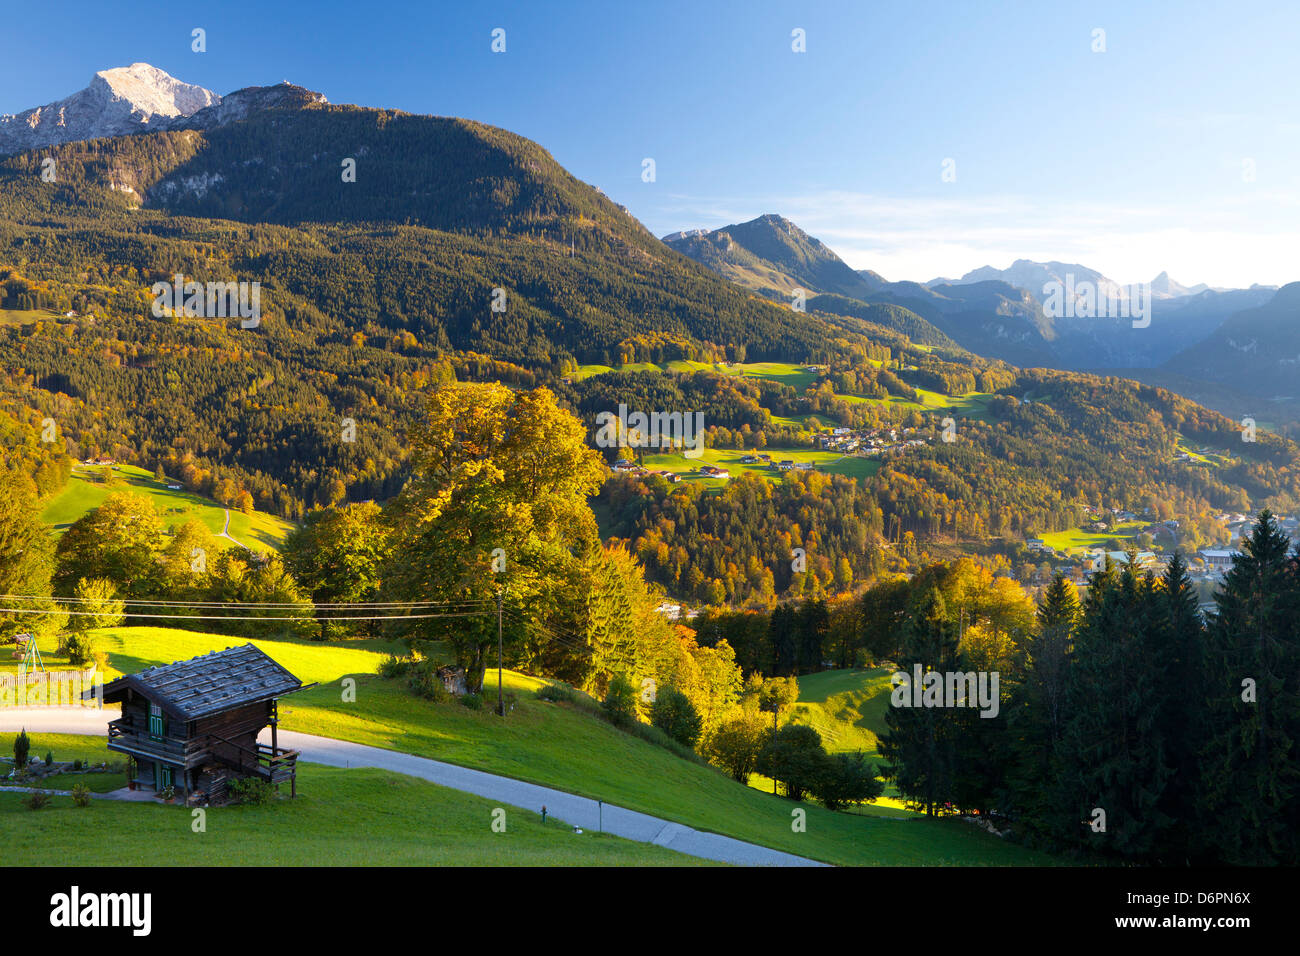 Overview of Berchtesgaden, Bavaria, Germany, Europe - Stock Image